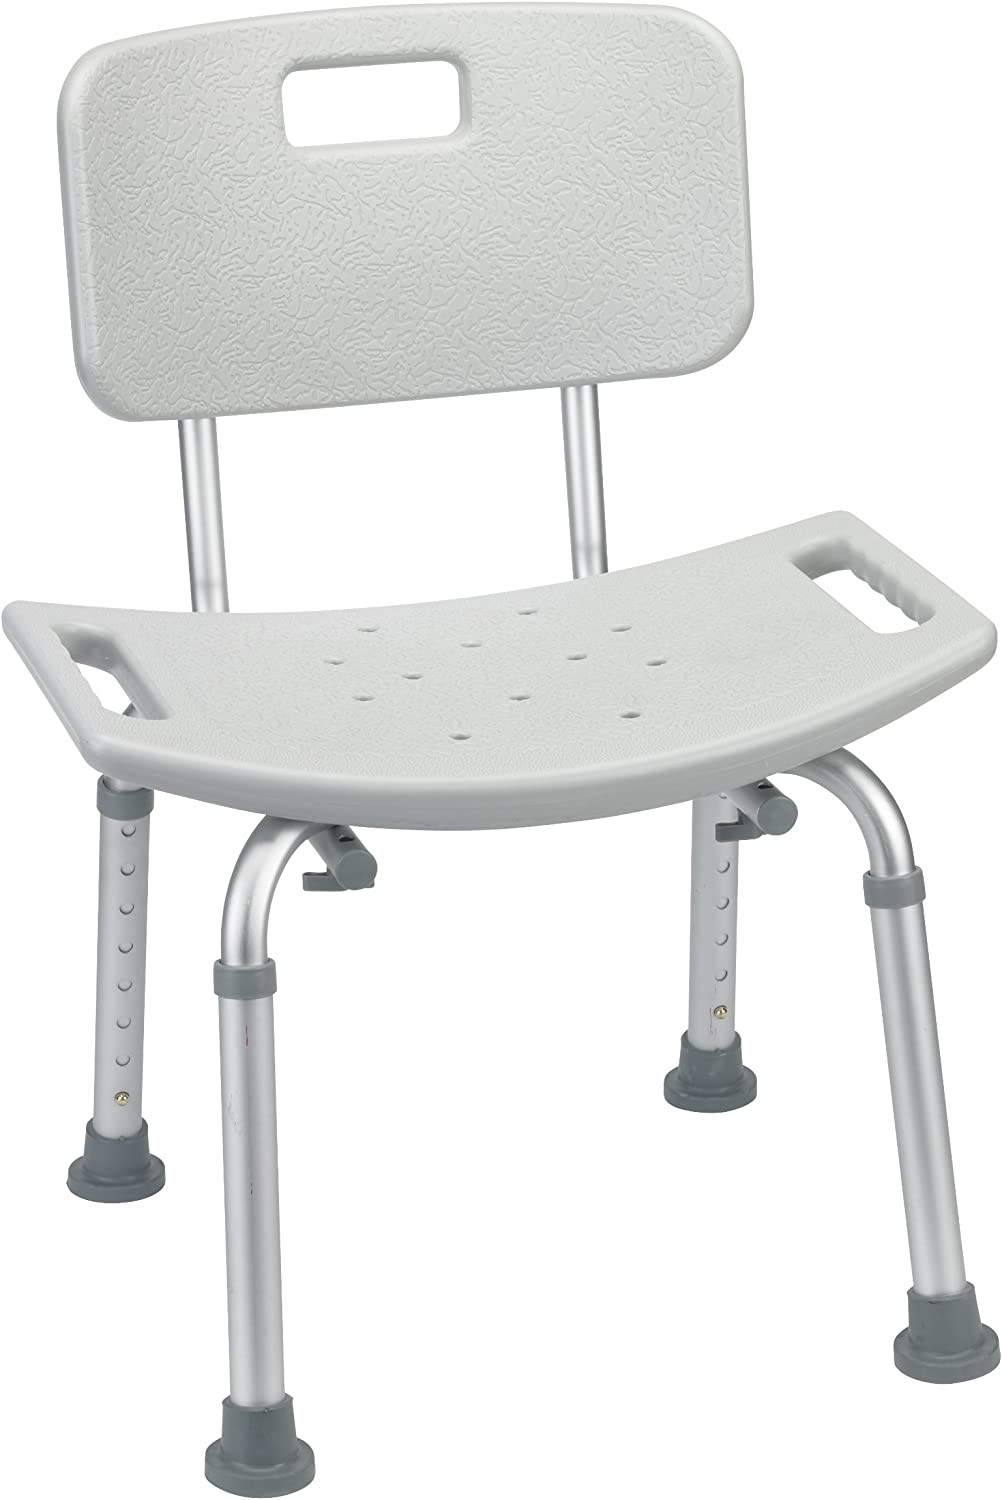 Drive Medical Bathroom Safety Shower Tub Bench Chair with Back, Grey: Health & Personal Care